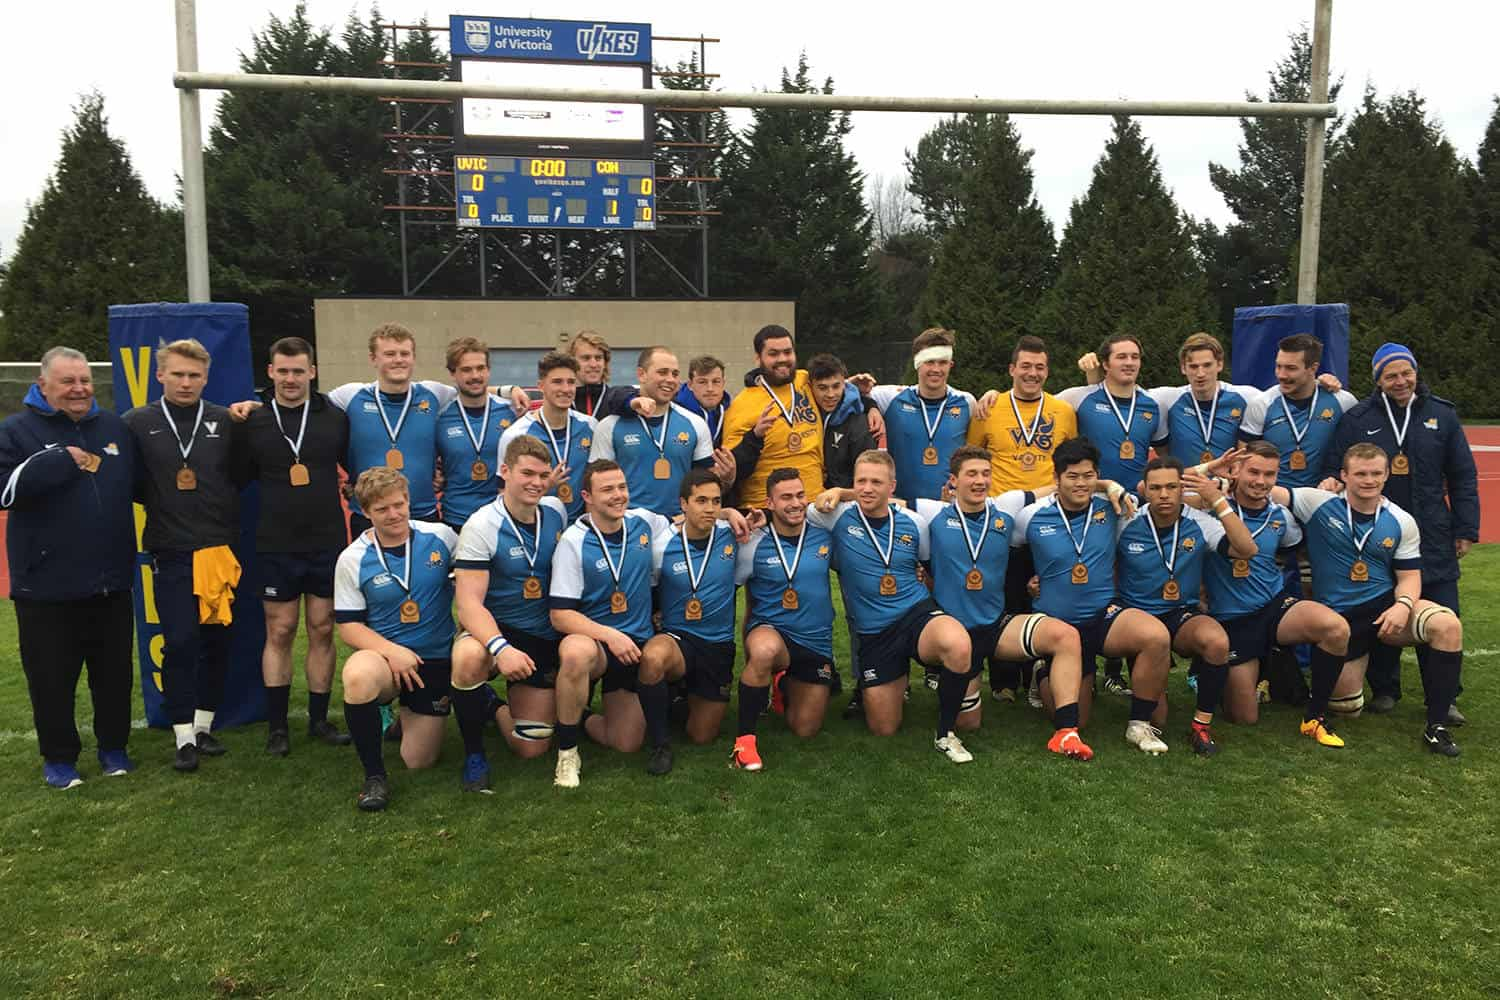 university-of-victoria rugby team